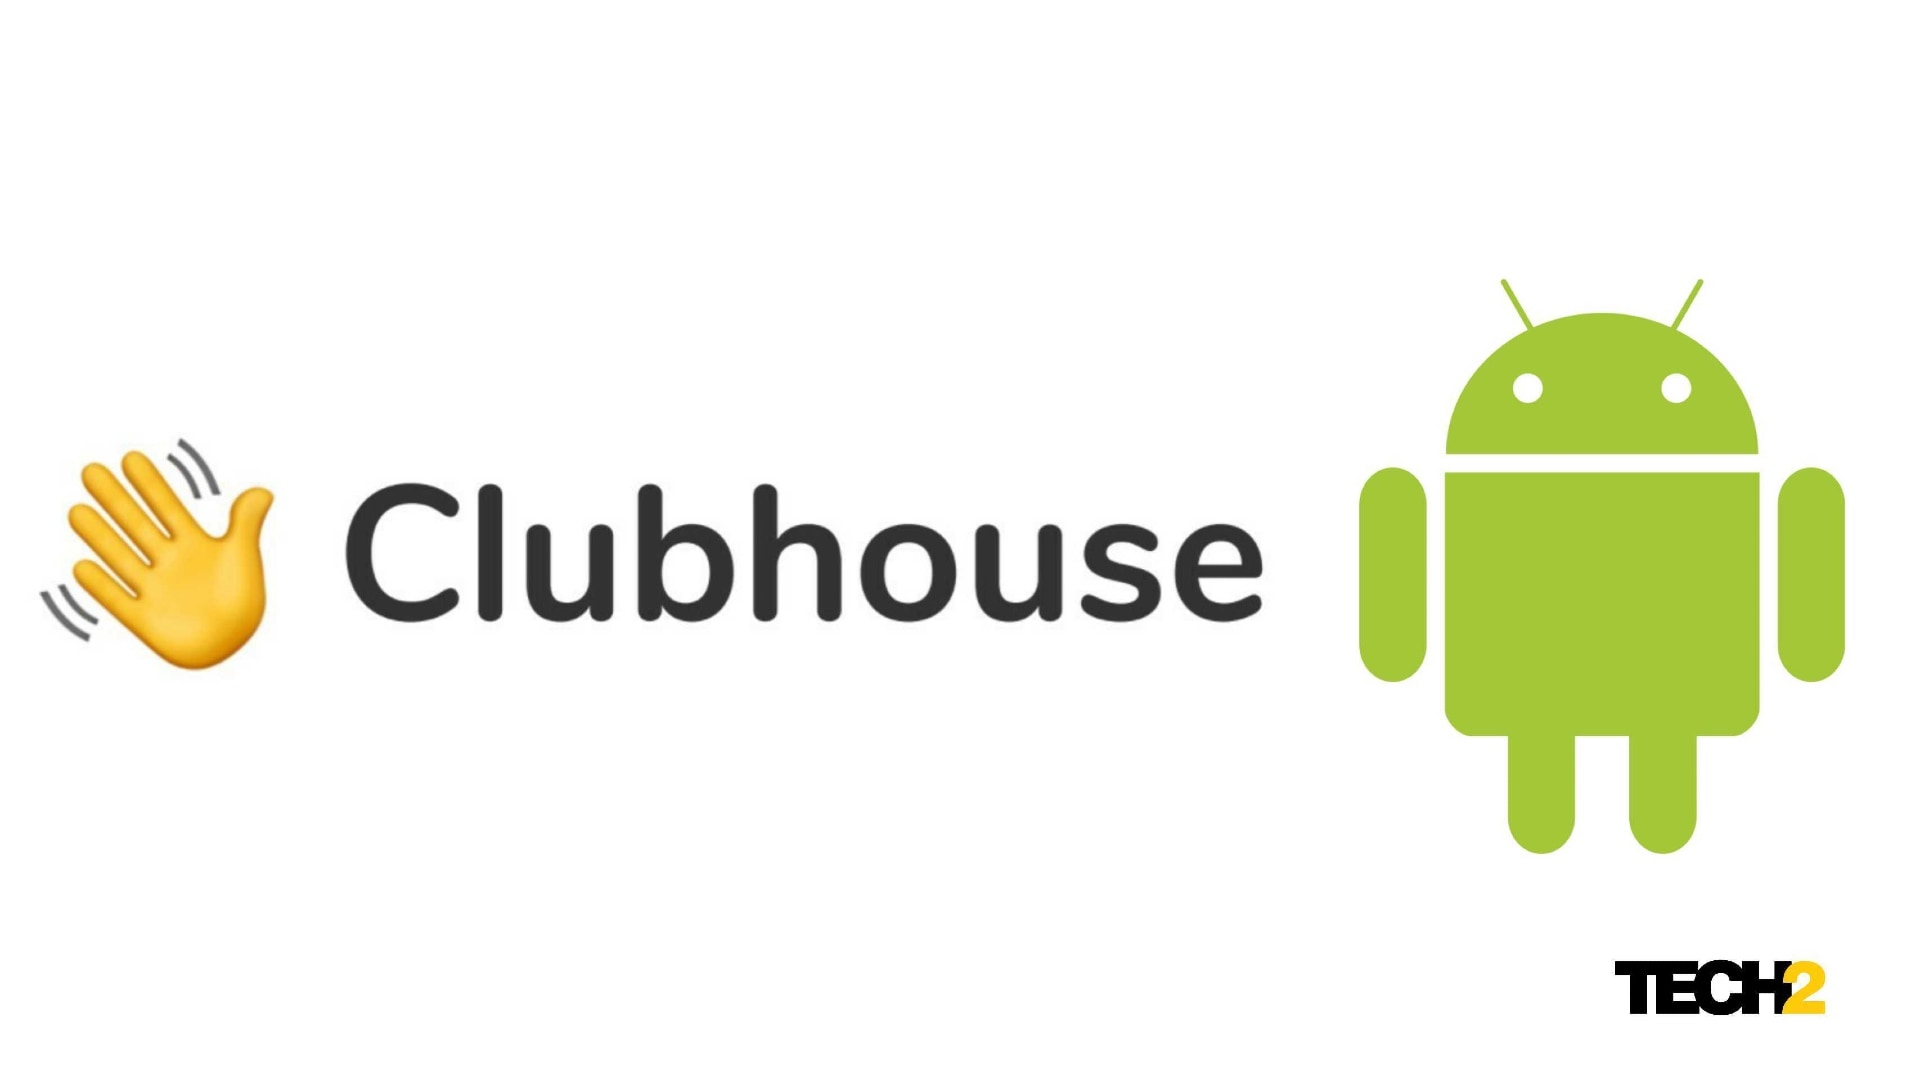 The invite-only Clubhouse app is now available on Android. Image: tech2